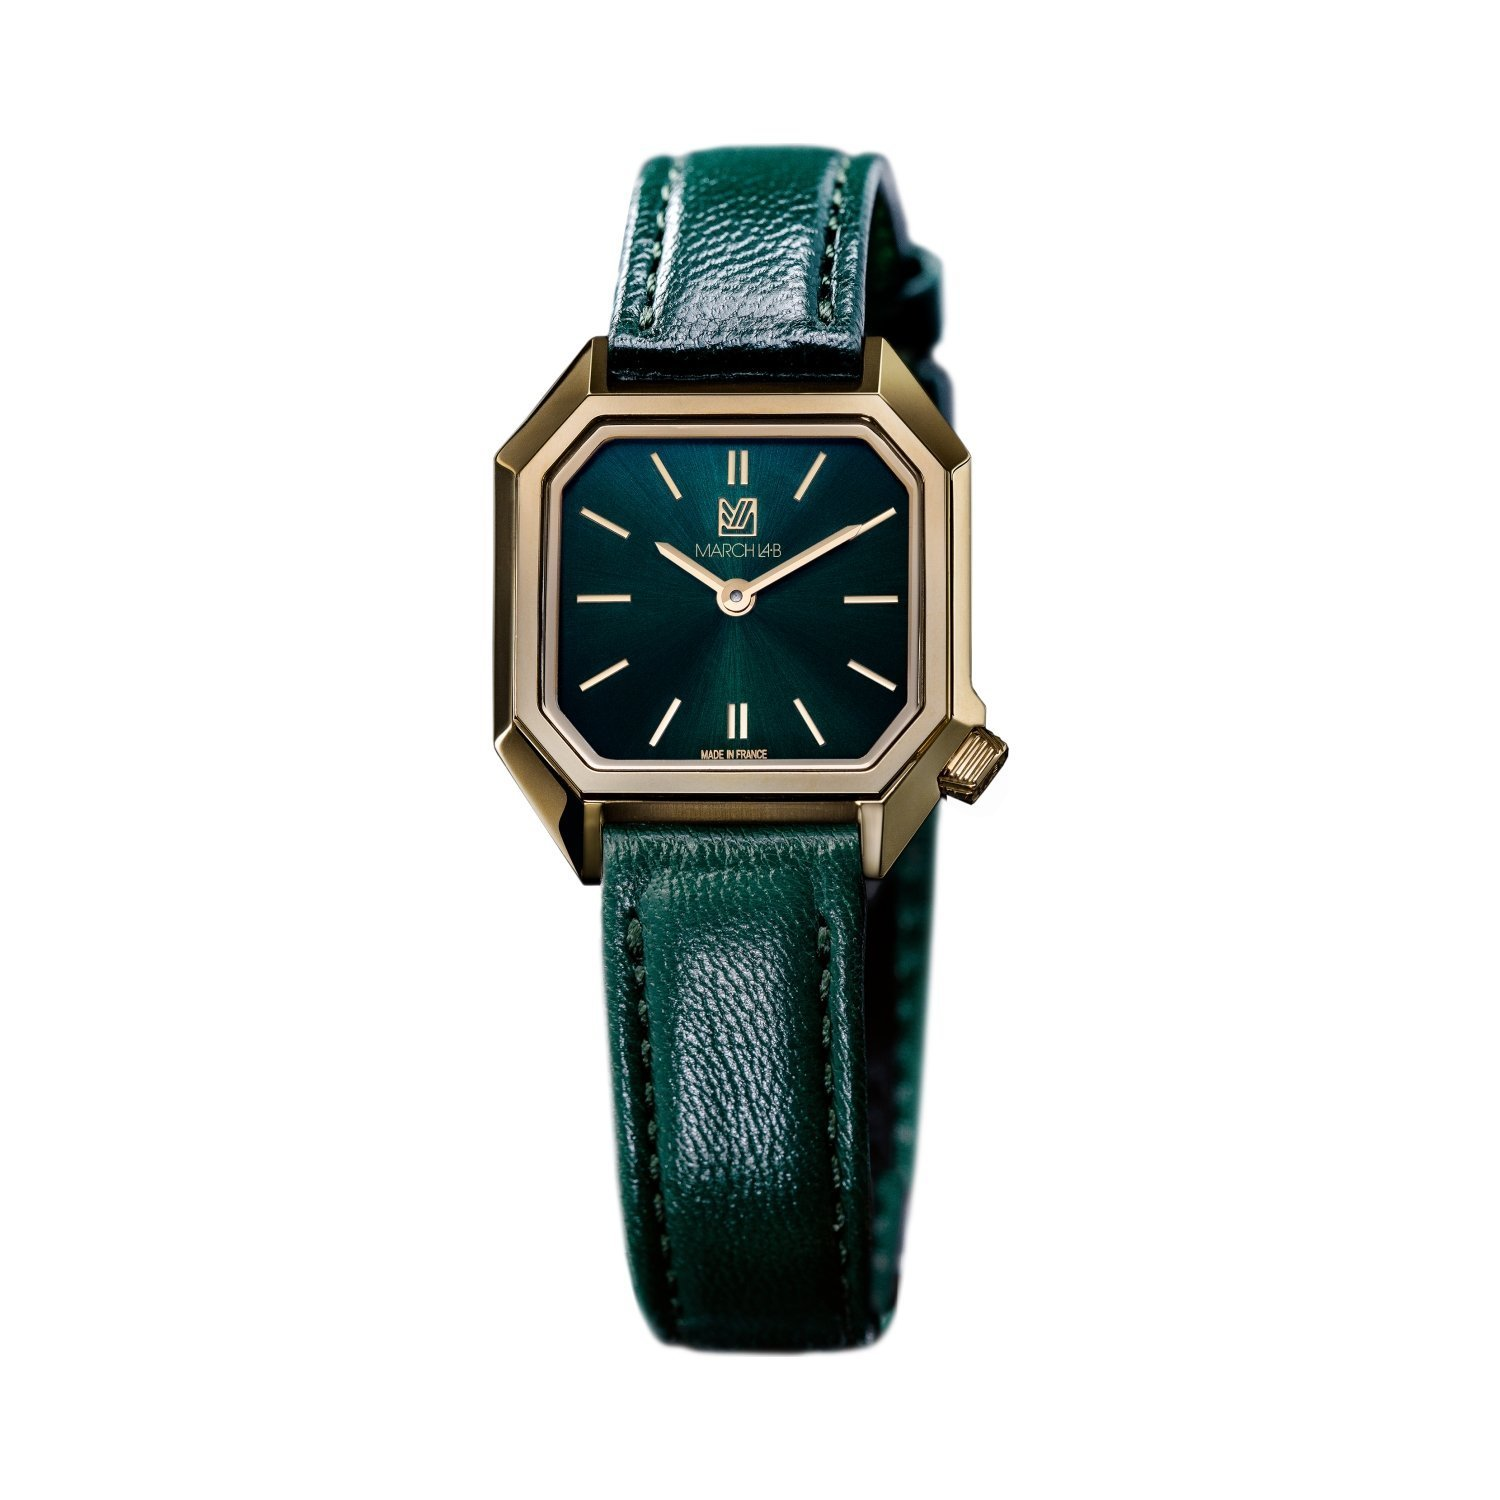 Montre March LA.B Lady Mansart Electric Emerald - Bracelet veau vert et noir vue 2